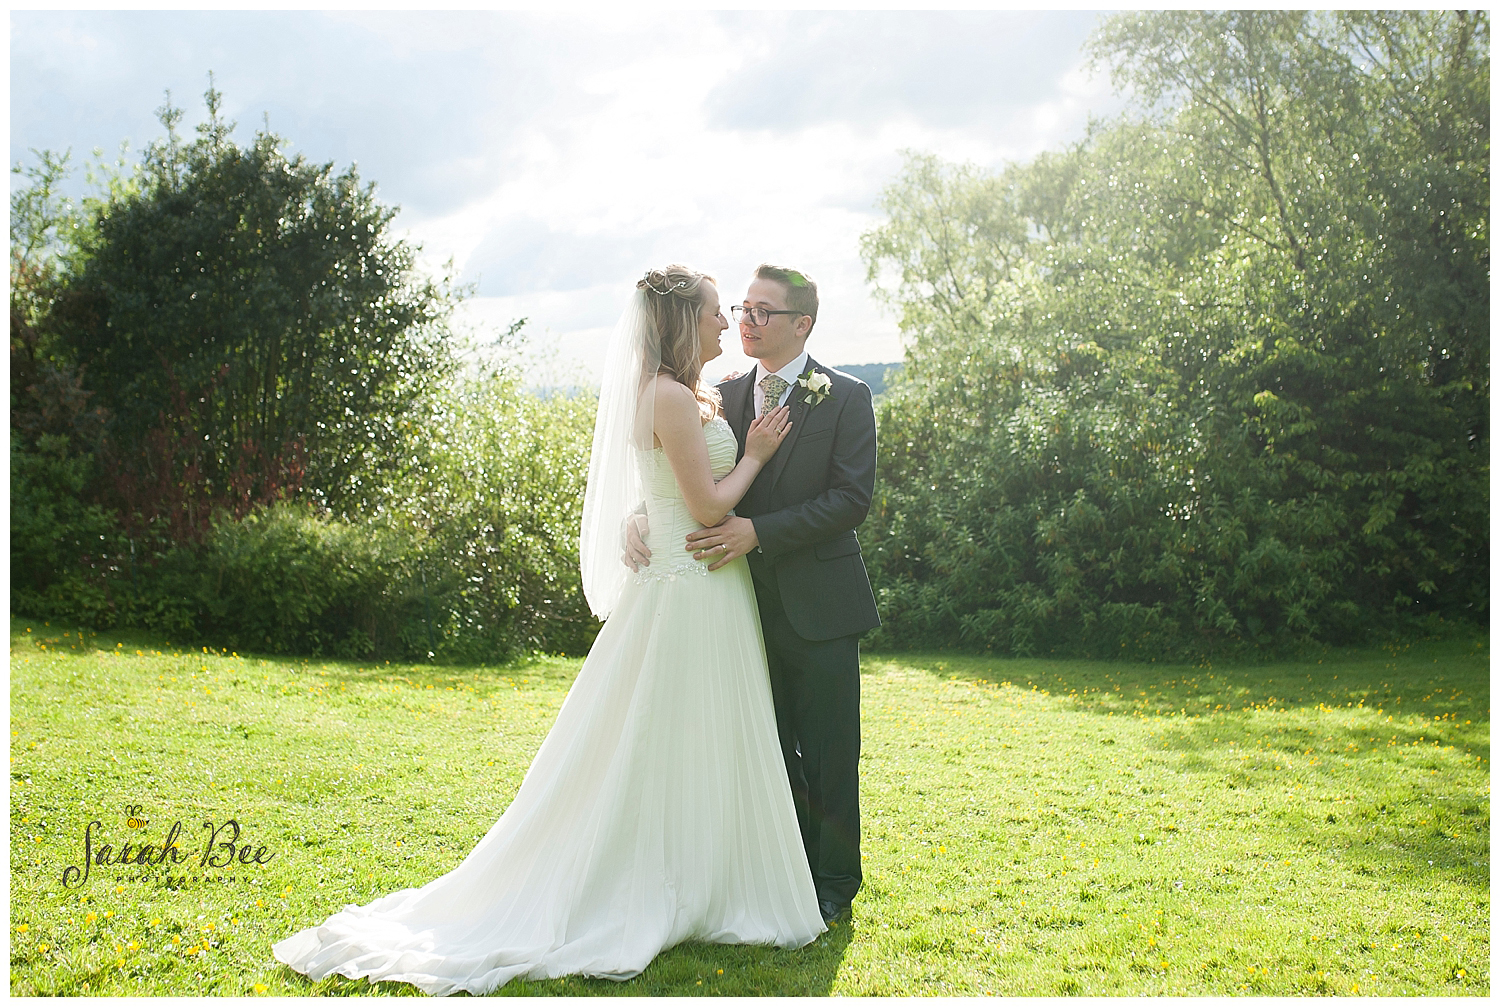 wedding photography with sarah bee photography, Peruga woodheys glossop, documentory photography wedding photographer_0198 copy.jpg